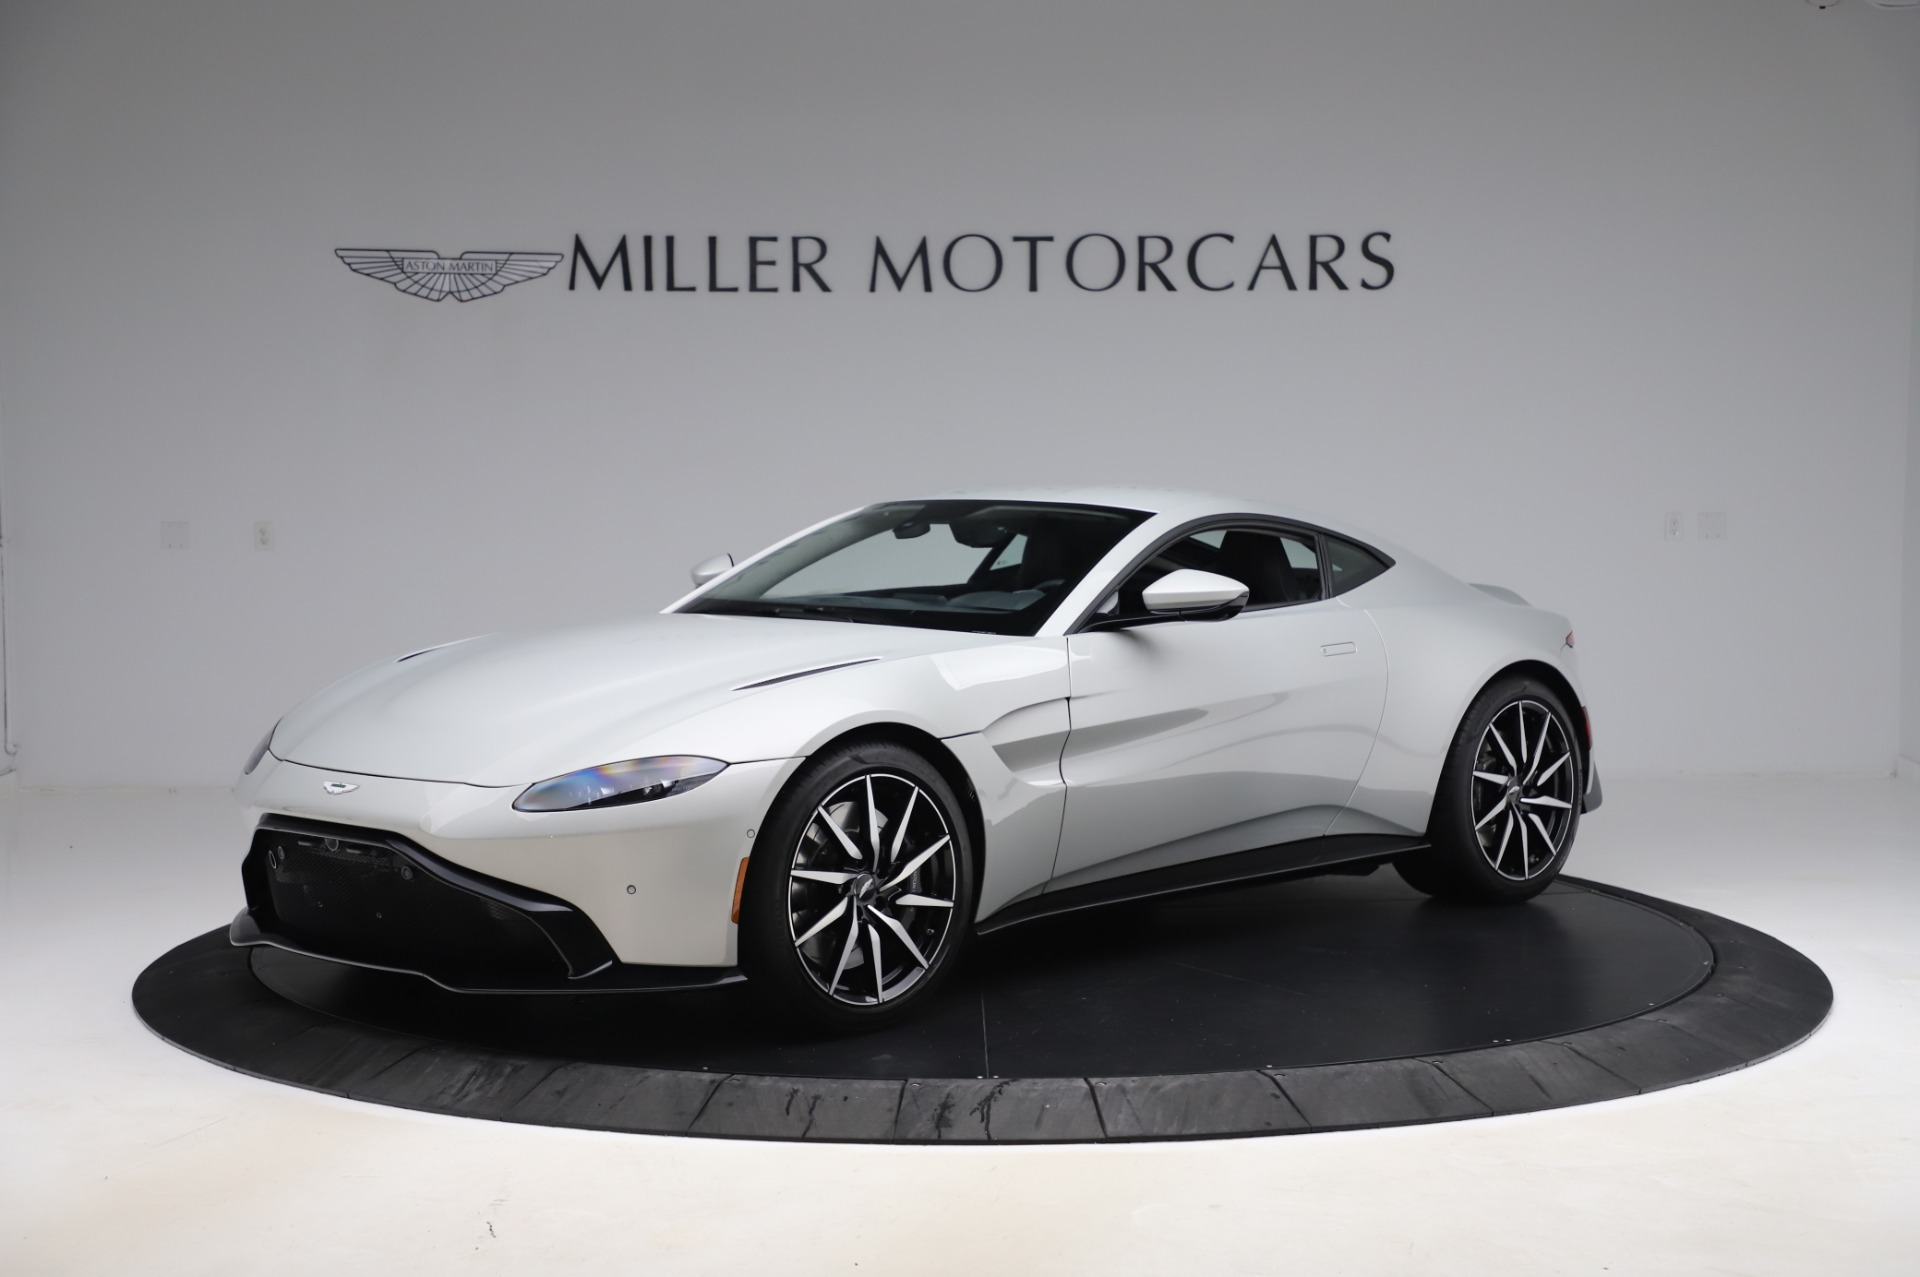 Used 2020 Aston Martin Vantage for sale $149,900 at Rolls-Royce Motor Cars Greenwich in Greenwich CT 06830 1